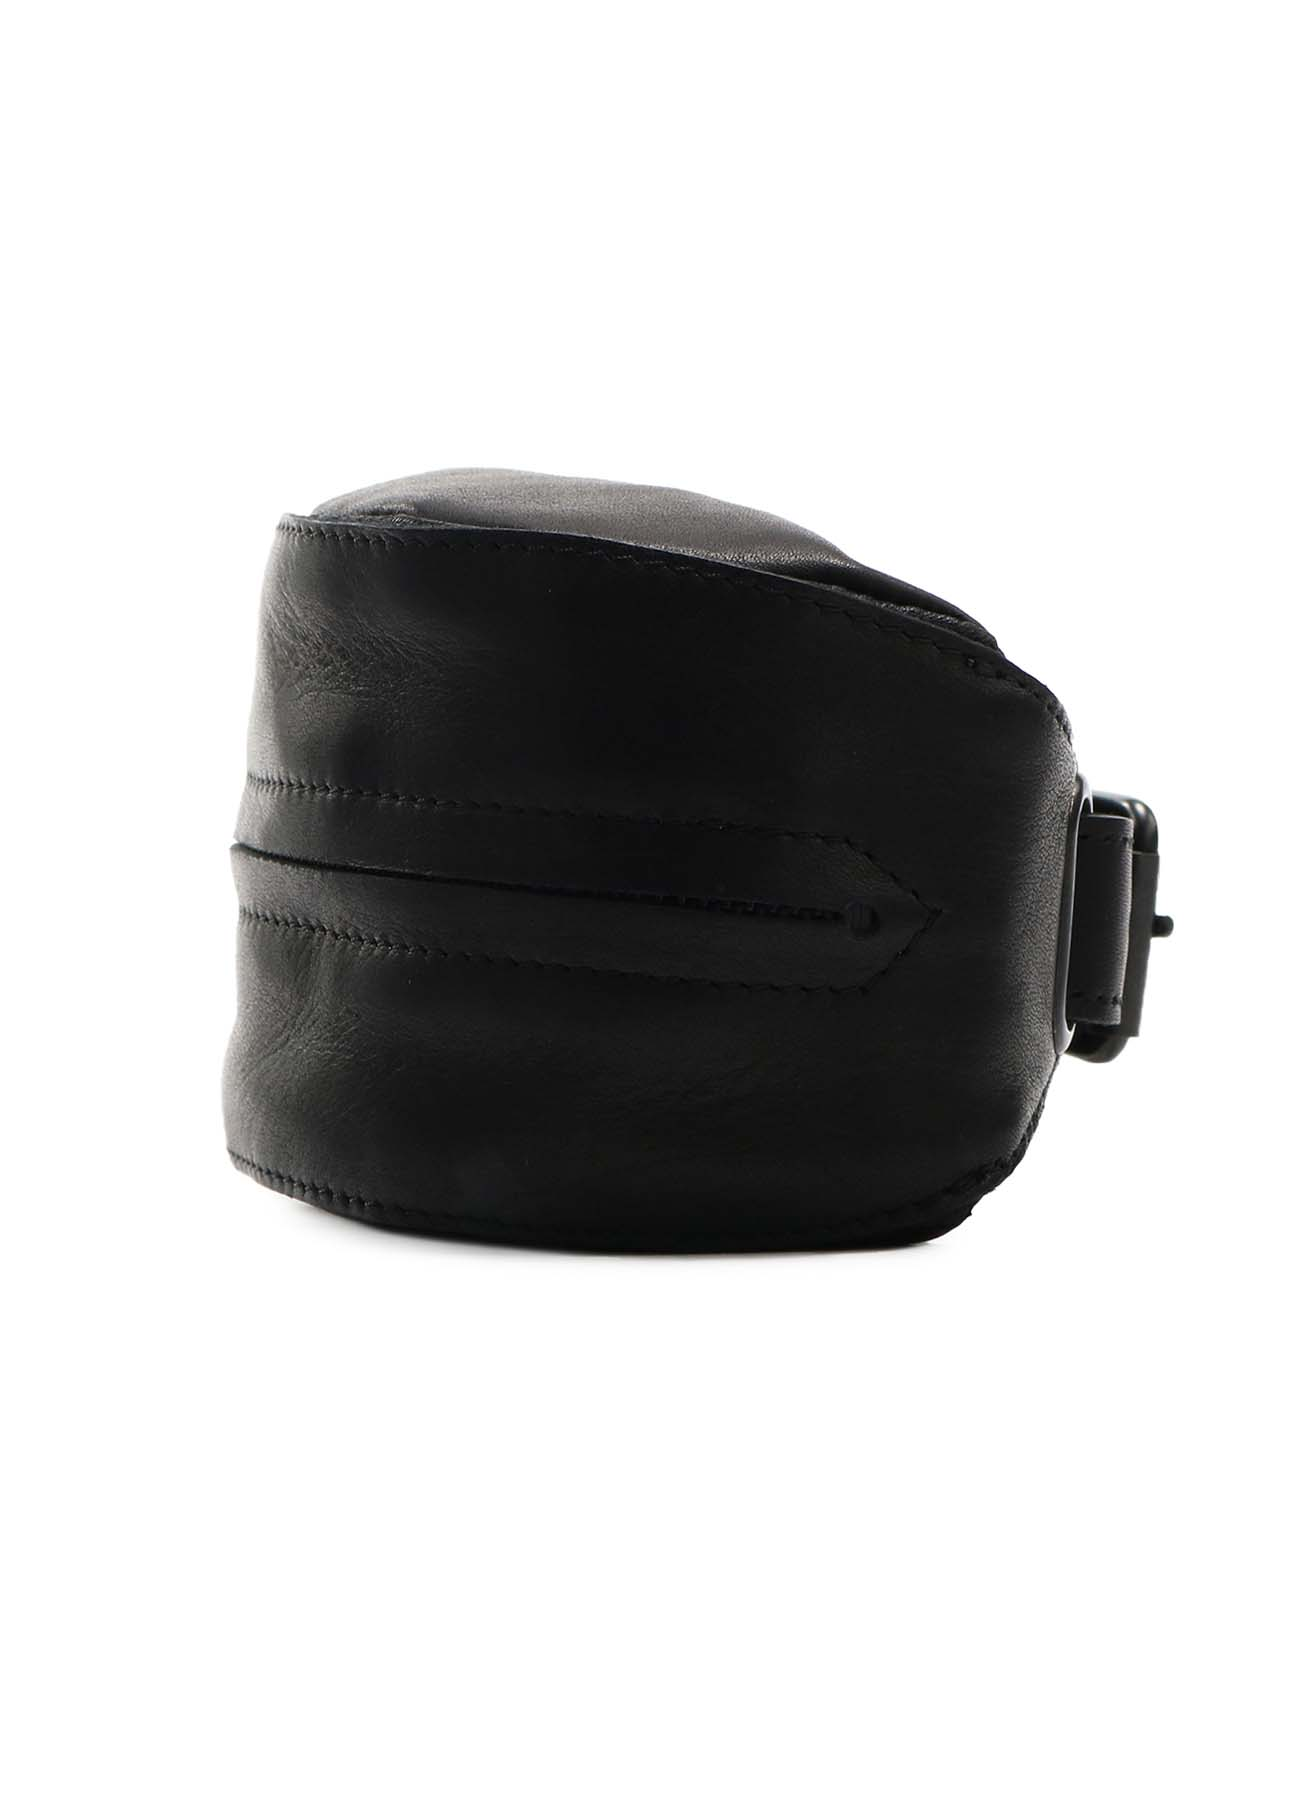 OILED SOFT LEATHER ARM BAND